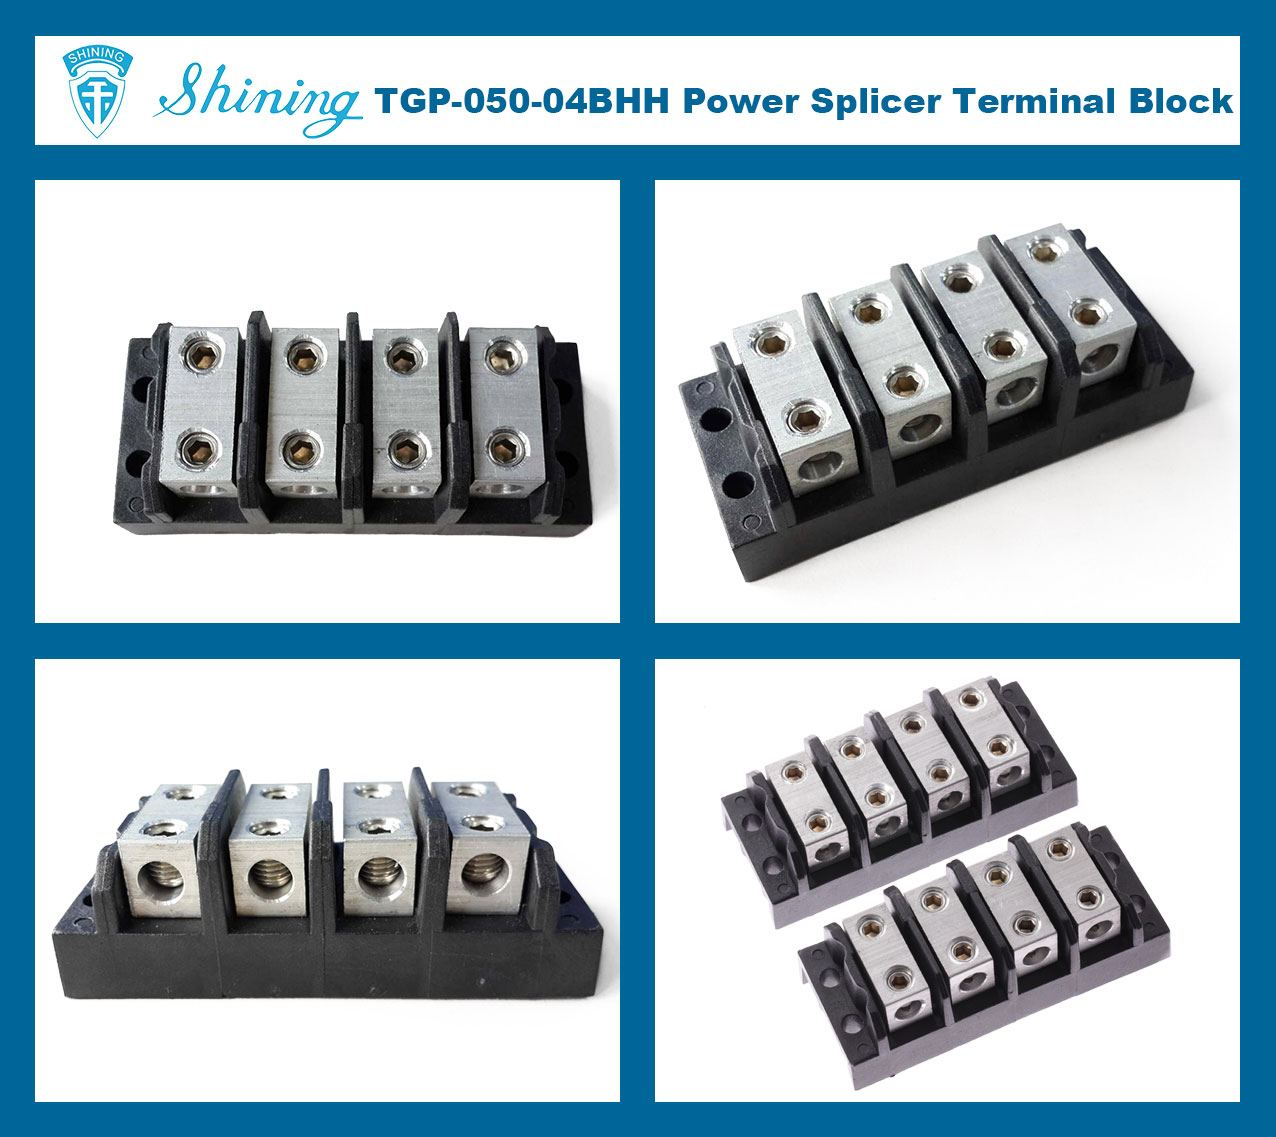 TGP-050-04BHH 600V 50A 4 Way Power Splicer Terminal Block